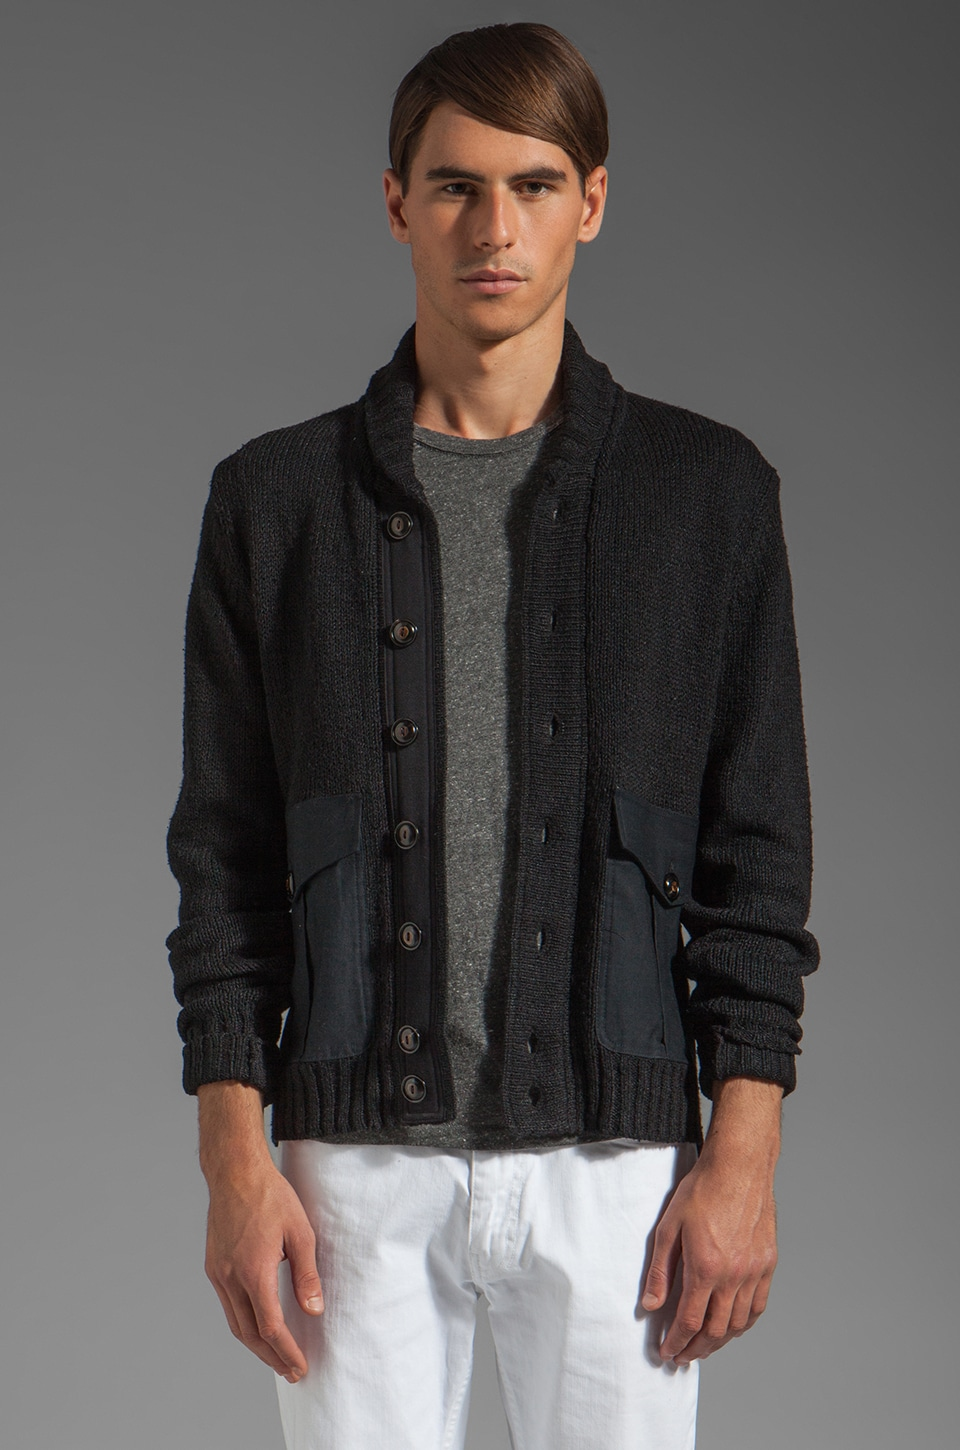 TODD SNYDER Military Shawl Jacket in Black